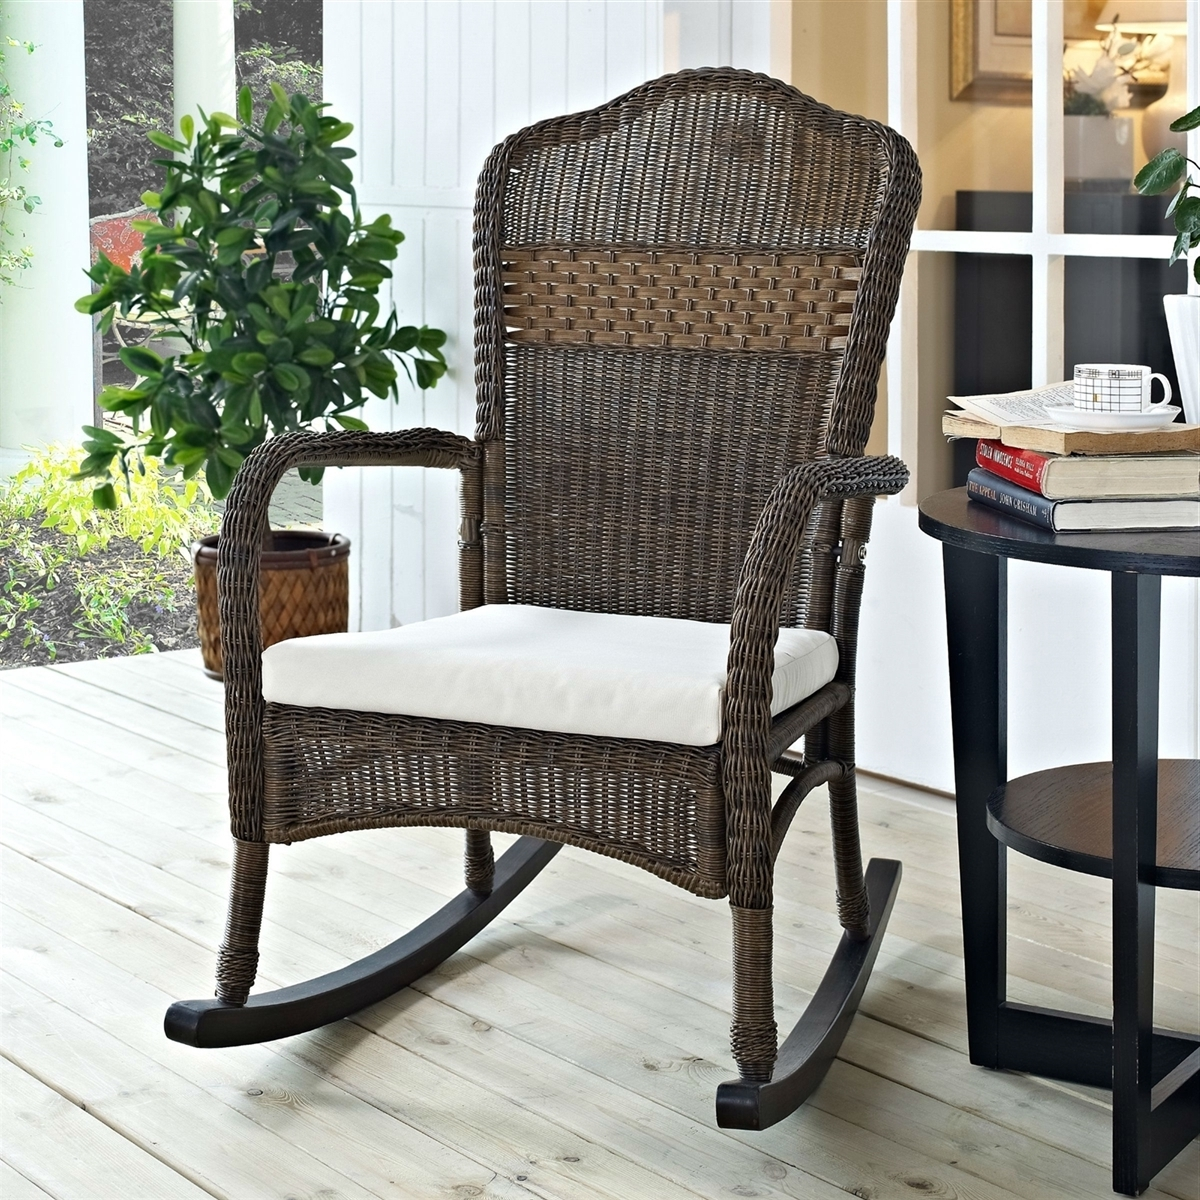 Small Patio Rocking Chairs For Latest Patio Furniture Rocking Chair Mocha With Beige Cushion Best Outdoor (View 10 of 20)